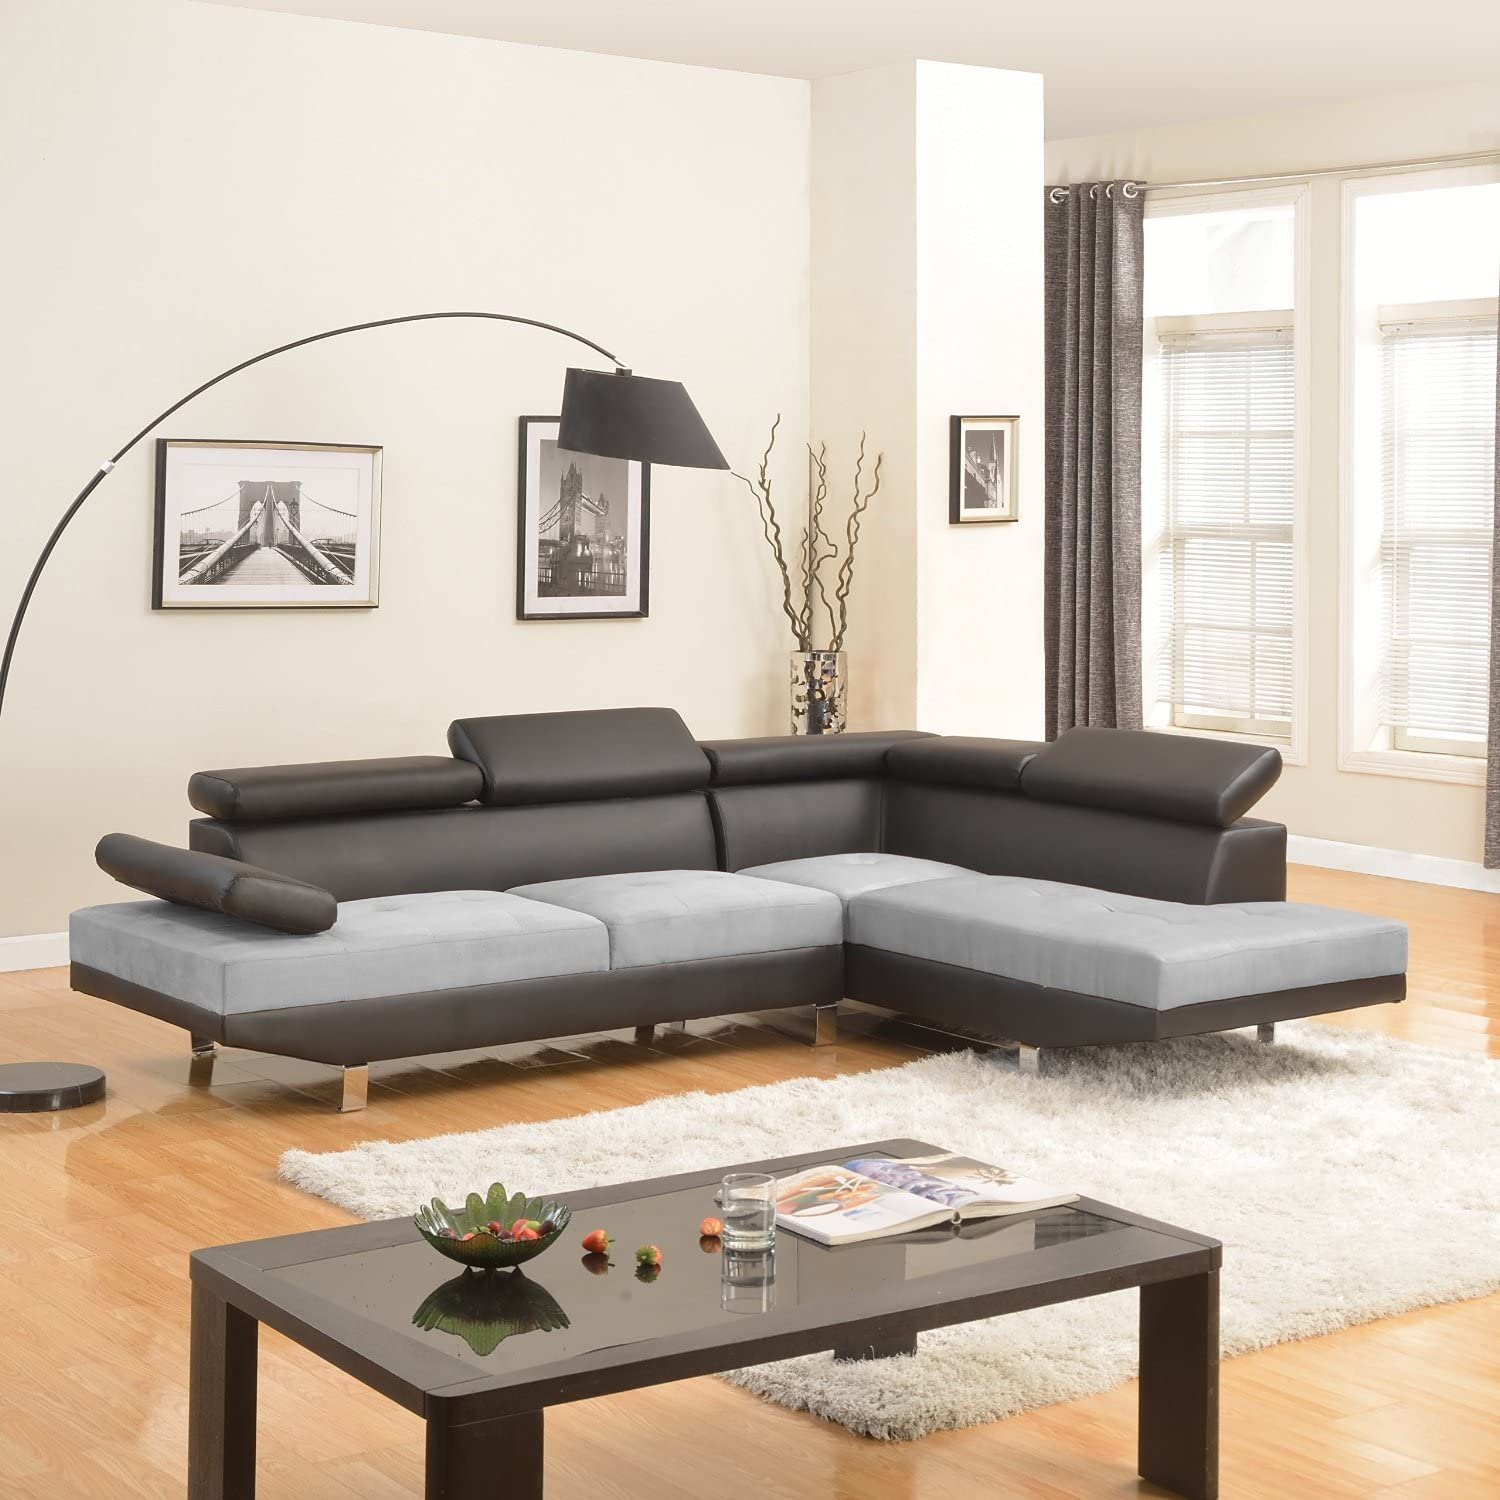 Divano Roma Furniture Modern Contemporary Designed Two Tone Microfiber and  Bonded Leather Sectional Sofa, Large, Black/Grey